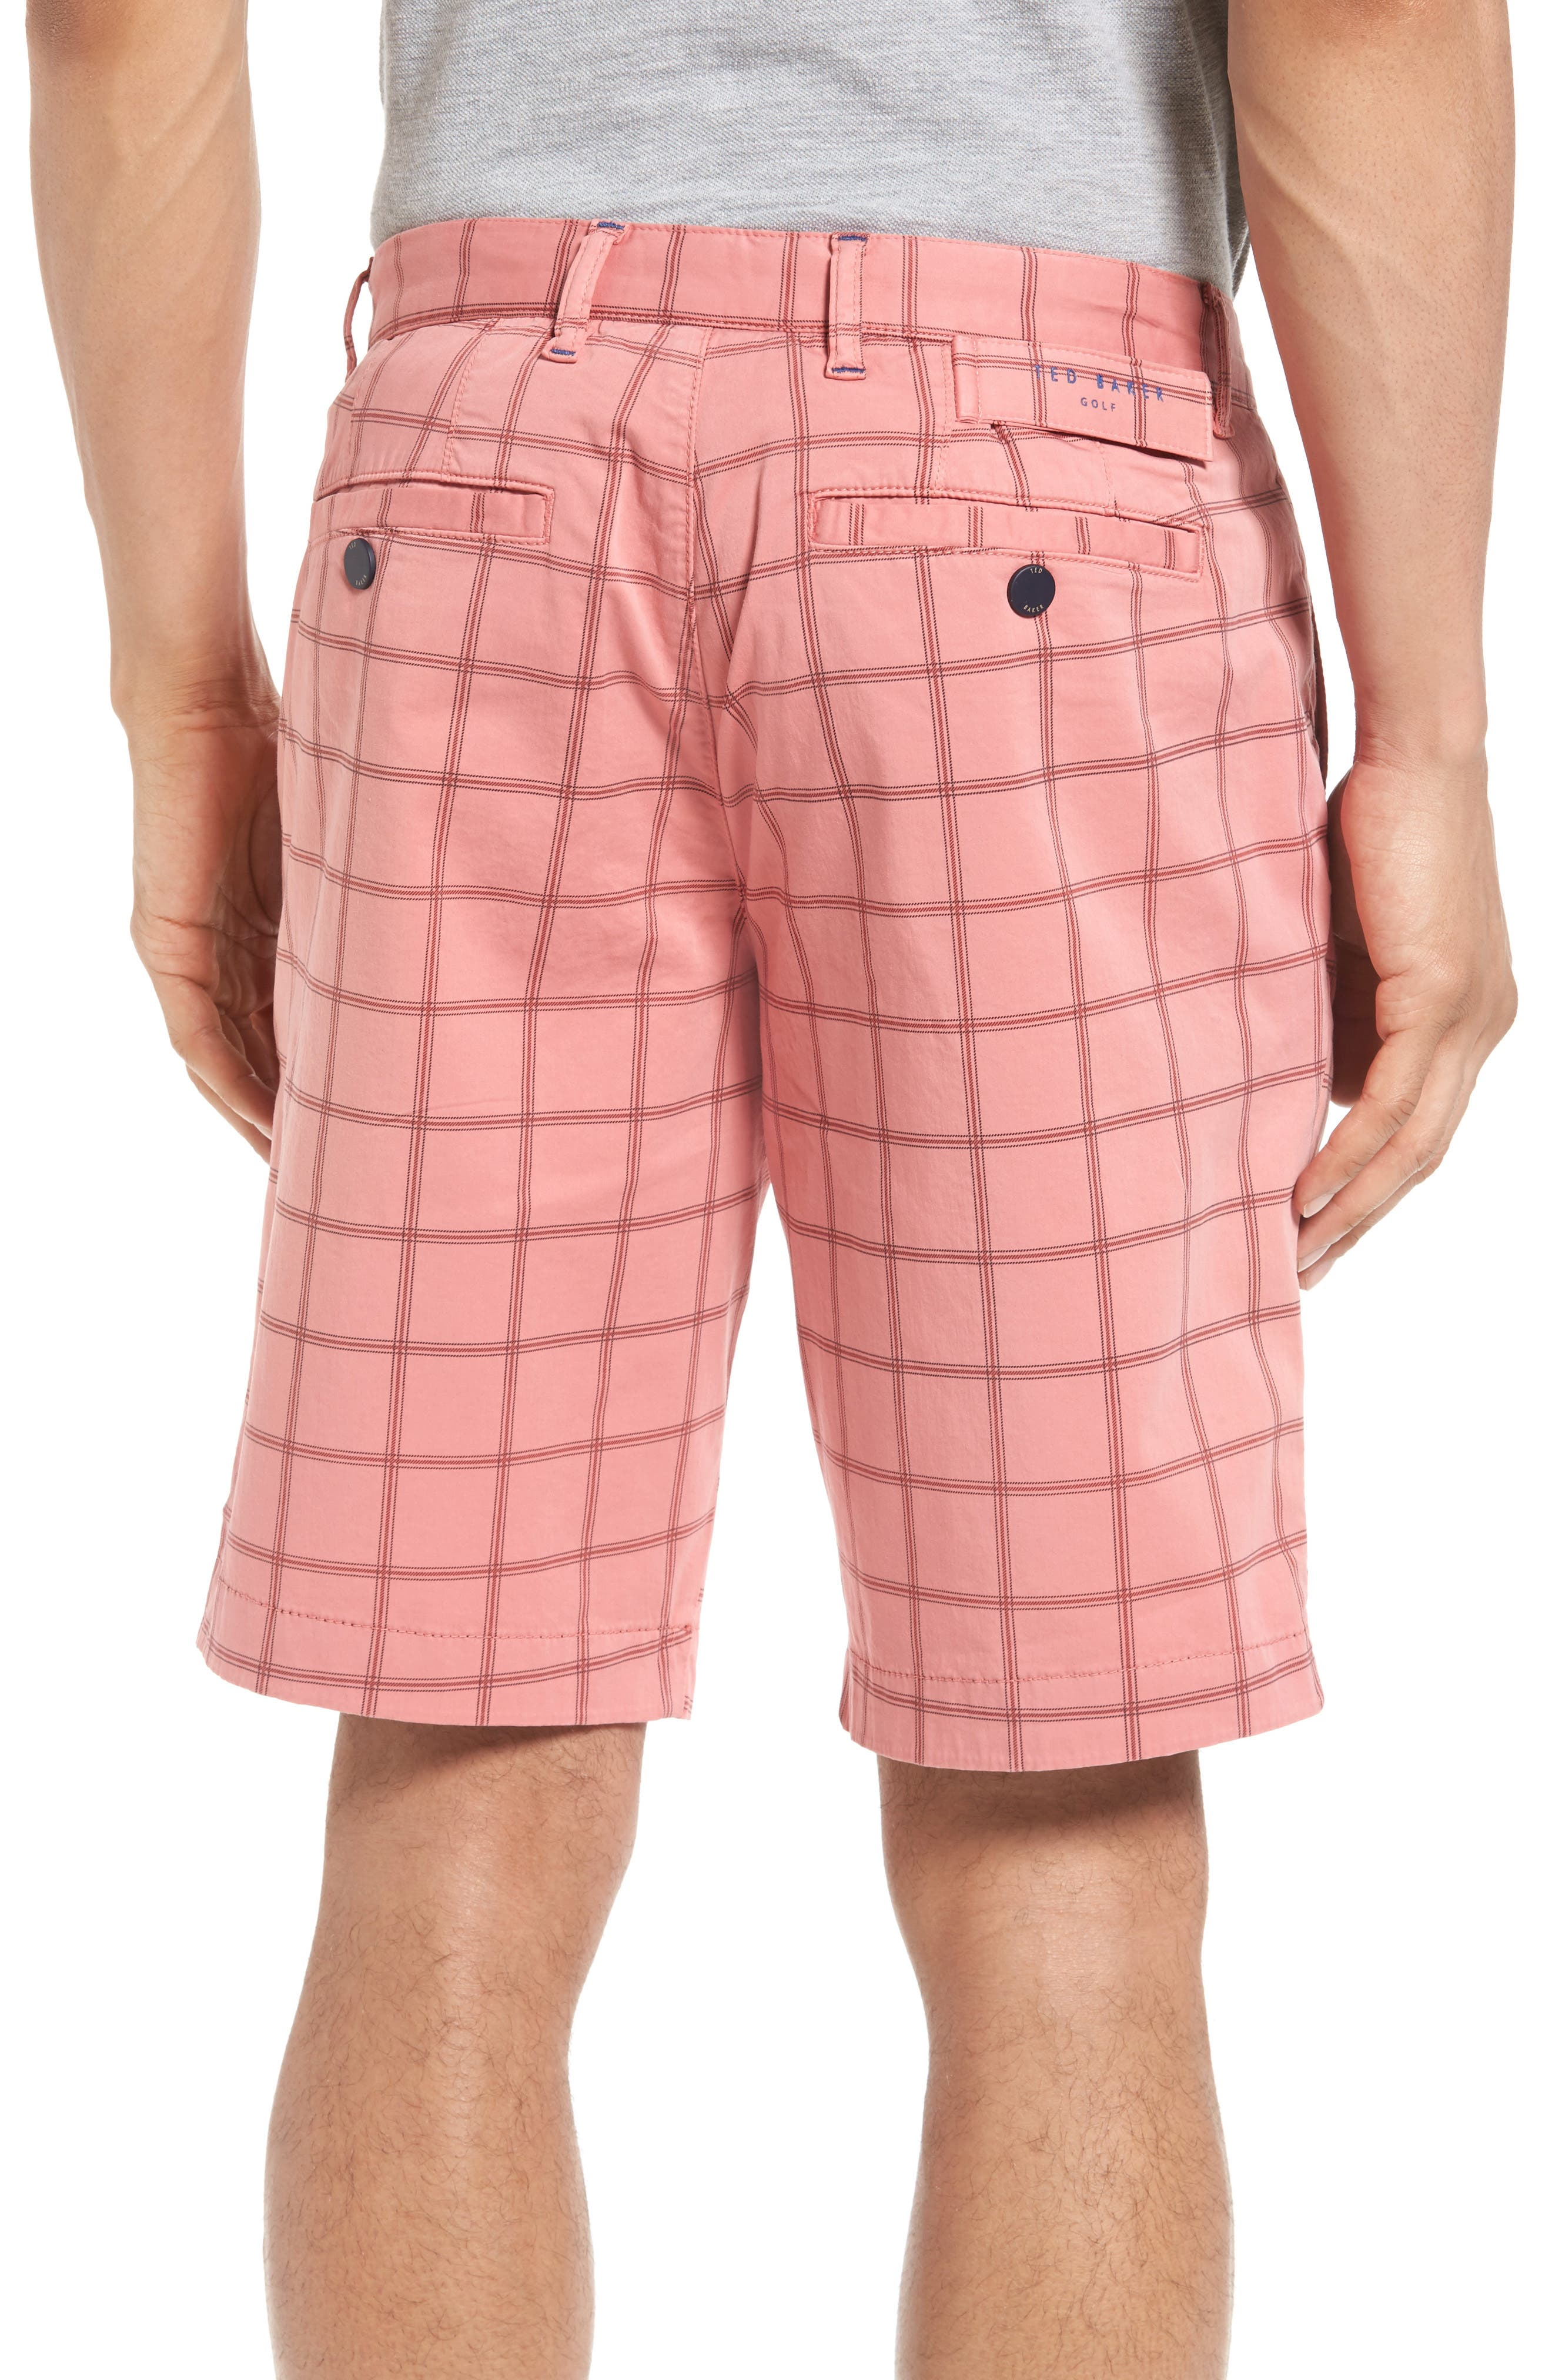 Golfshr Print Golf Shorts,                             Alternate thumbnail 6, color,